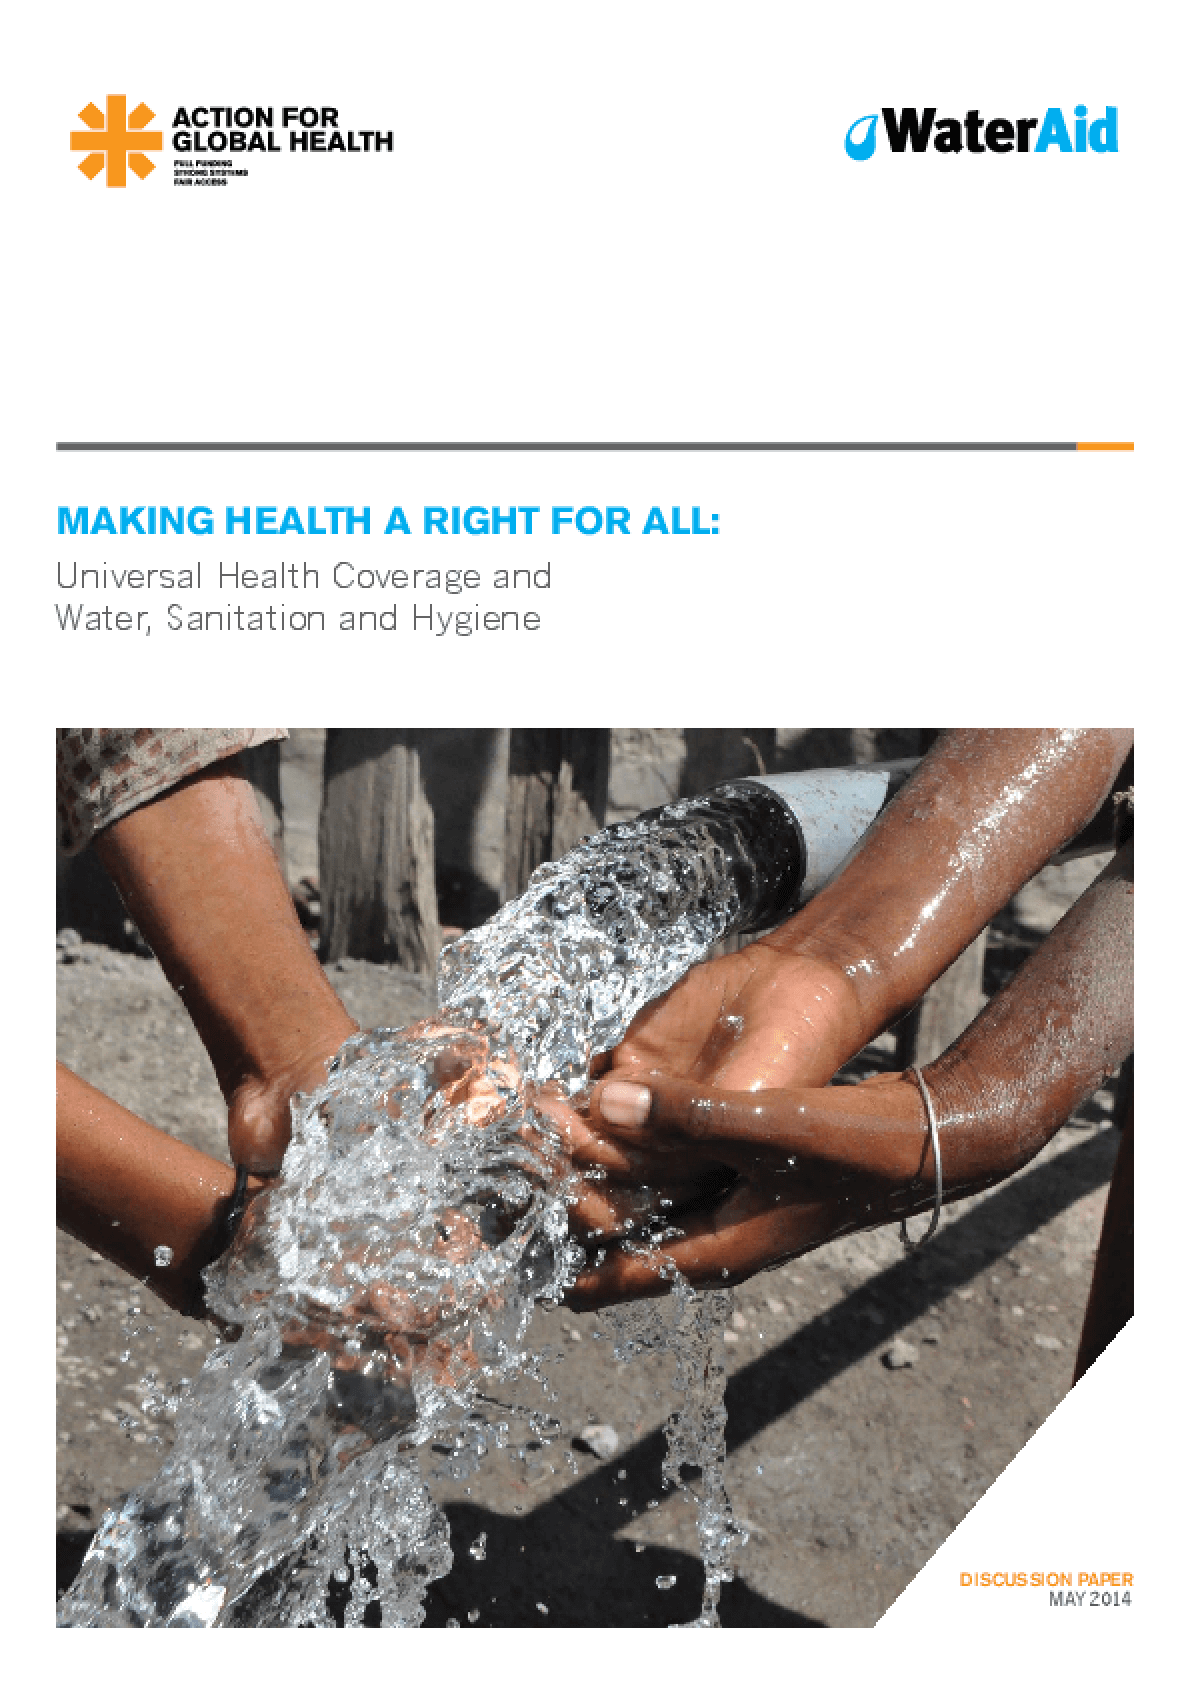 Making Health A Right for All: Universal Health Coverage and Water, Sanitation, and Hygiene